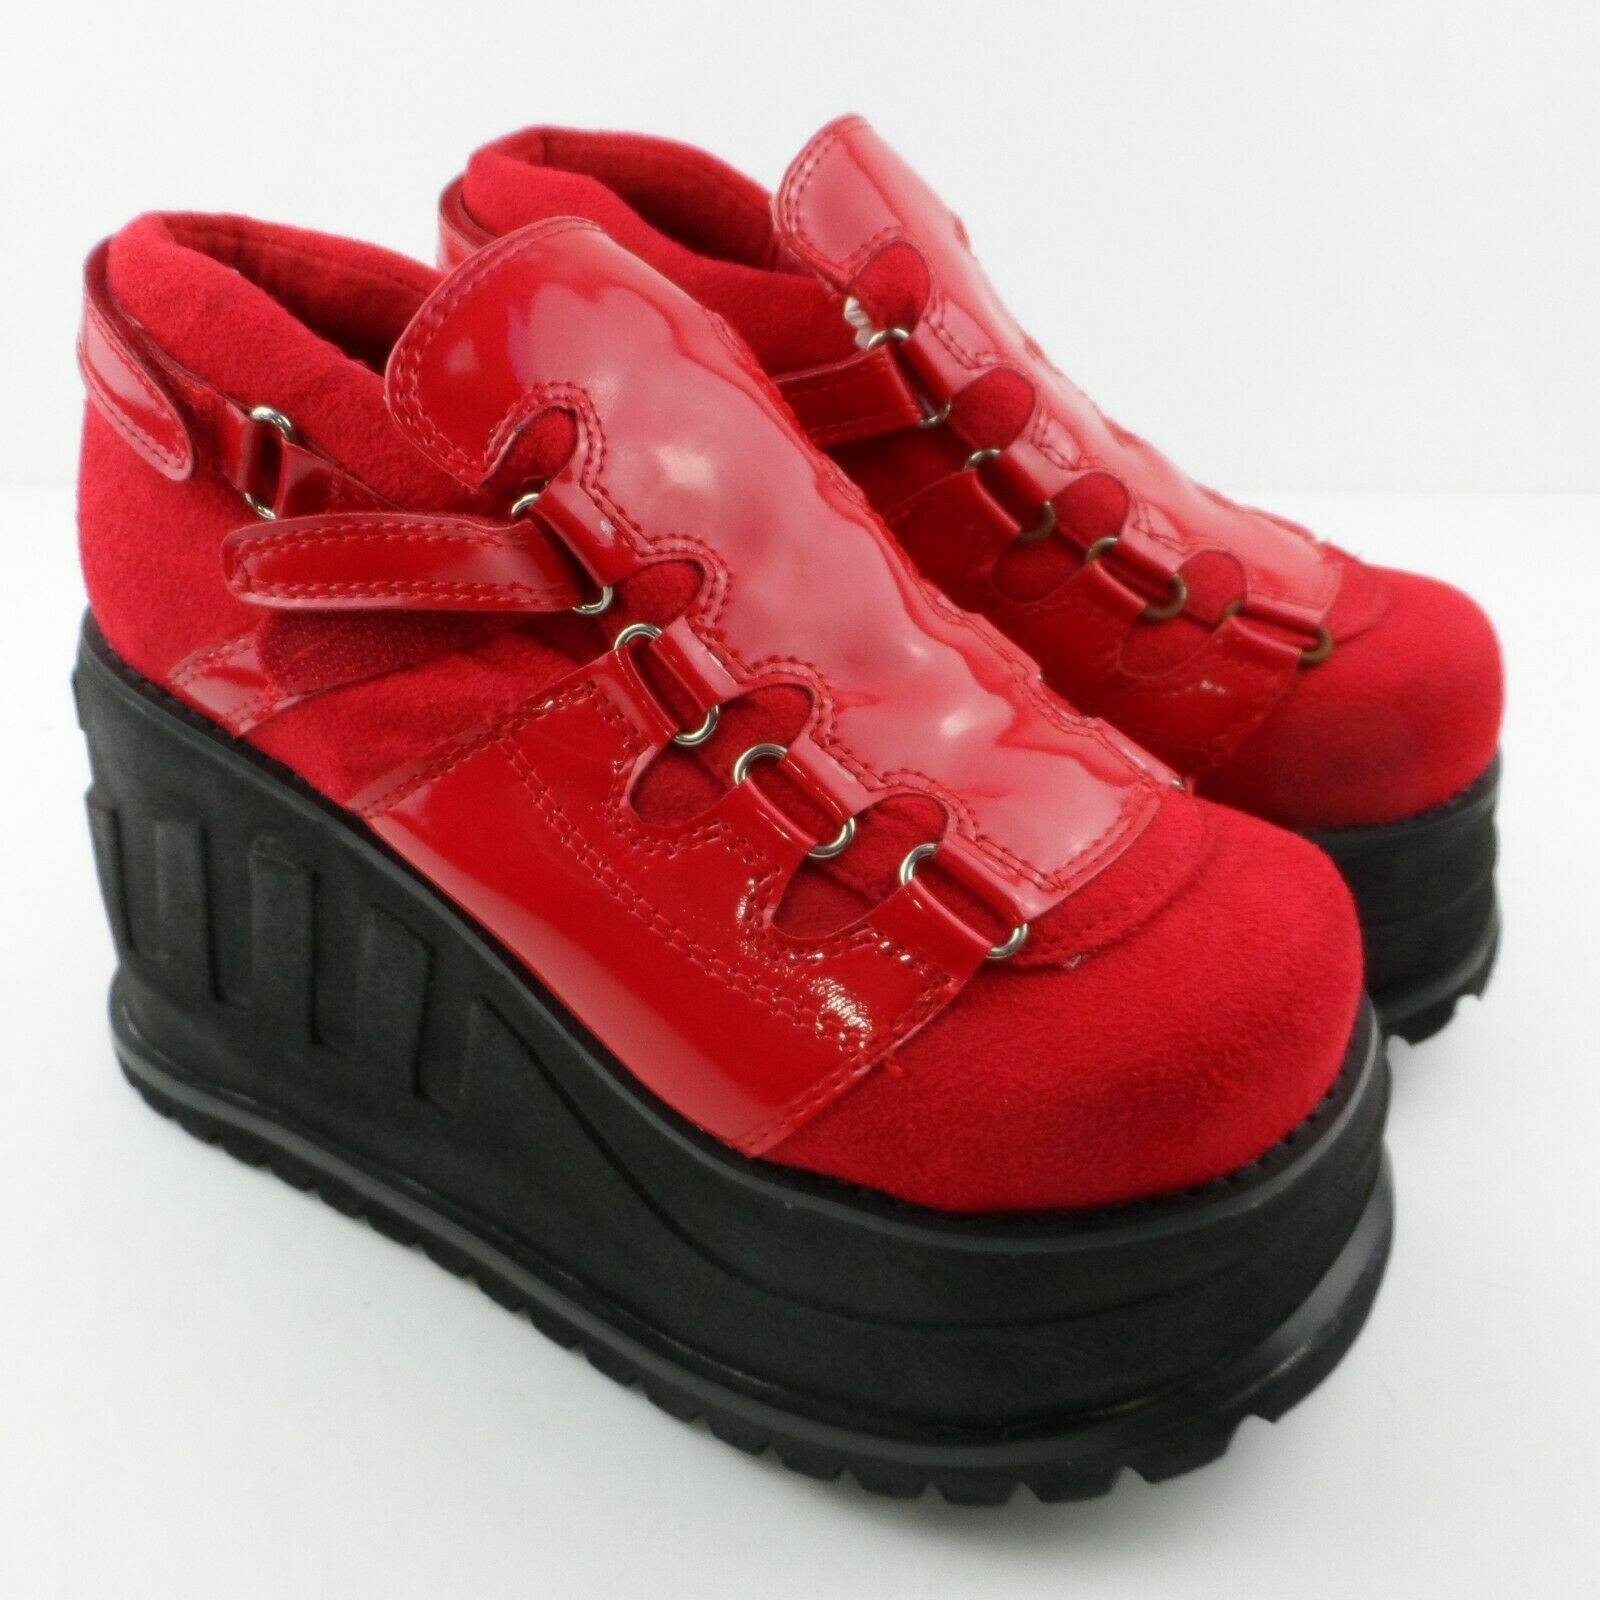 a80b97d1bb37 Cyber Punk Steam Goth Shoes UK 4 Red Platform Wedge Creepers in 2019 ...